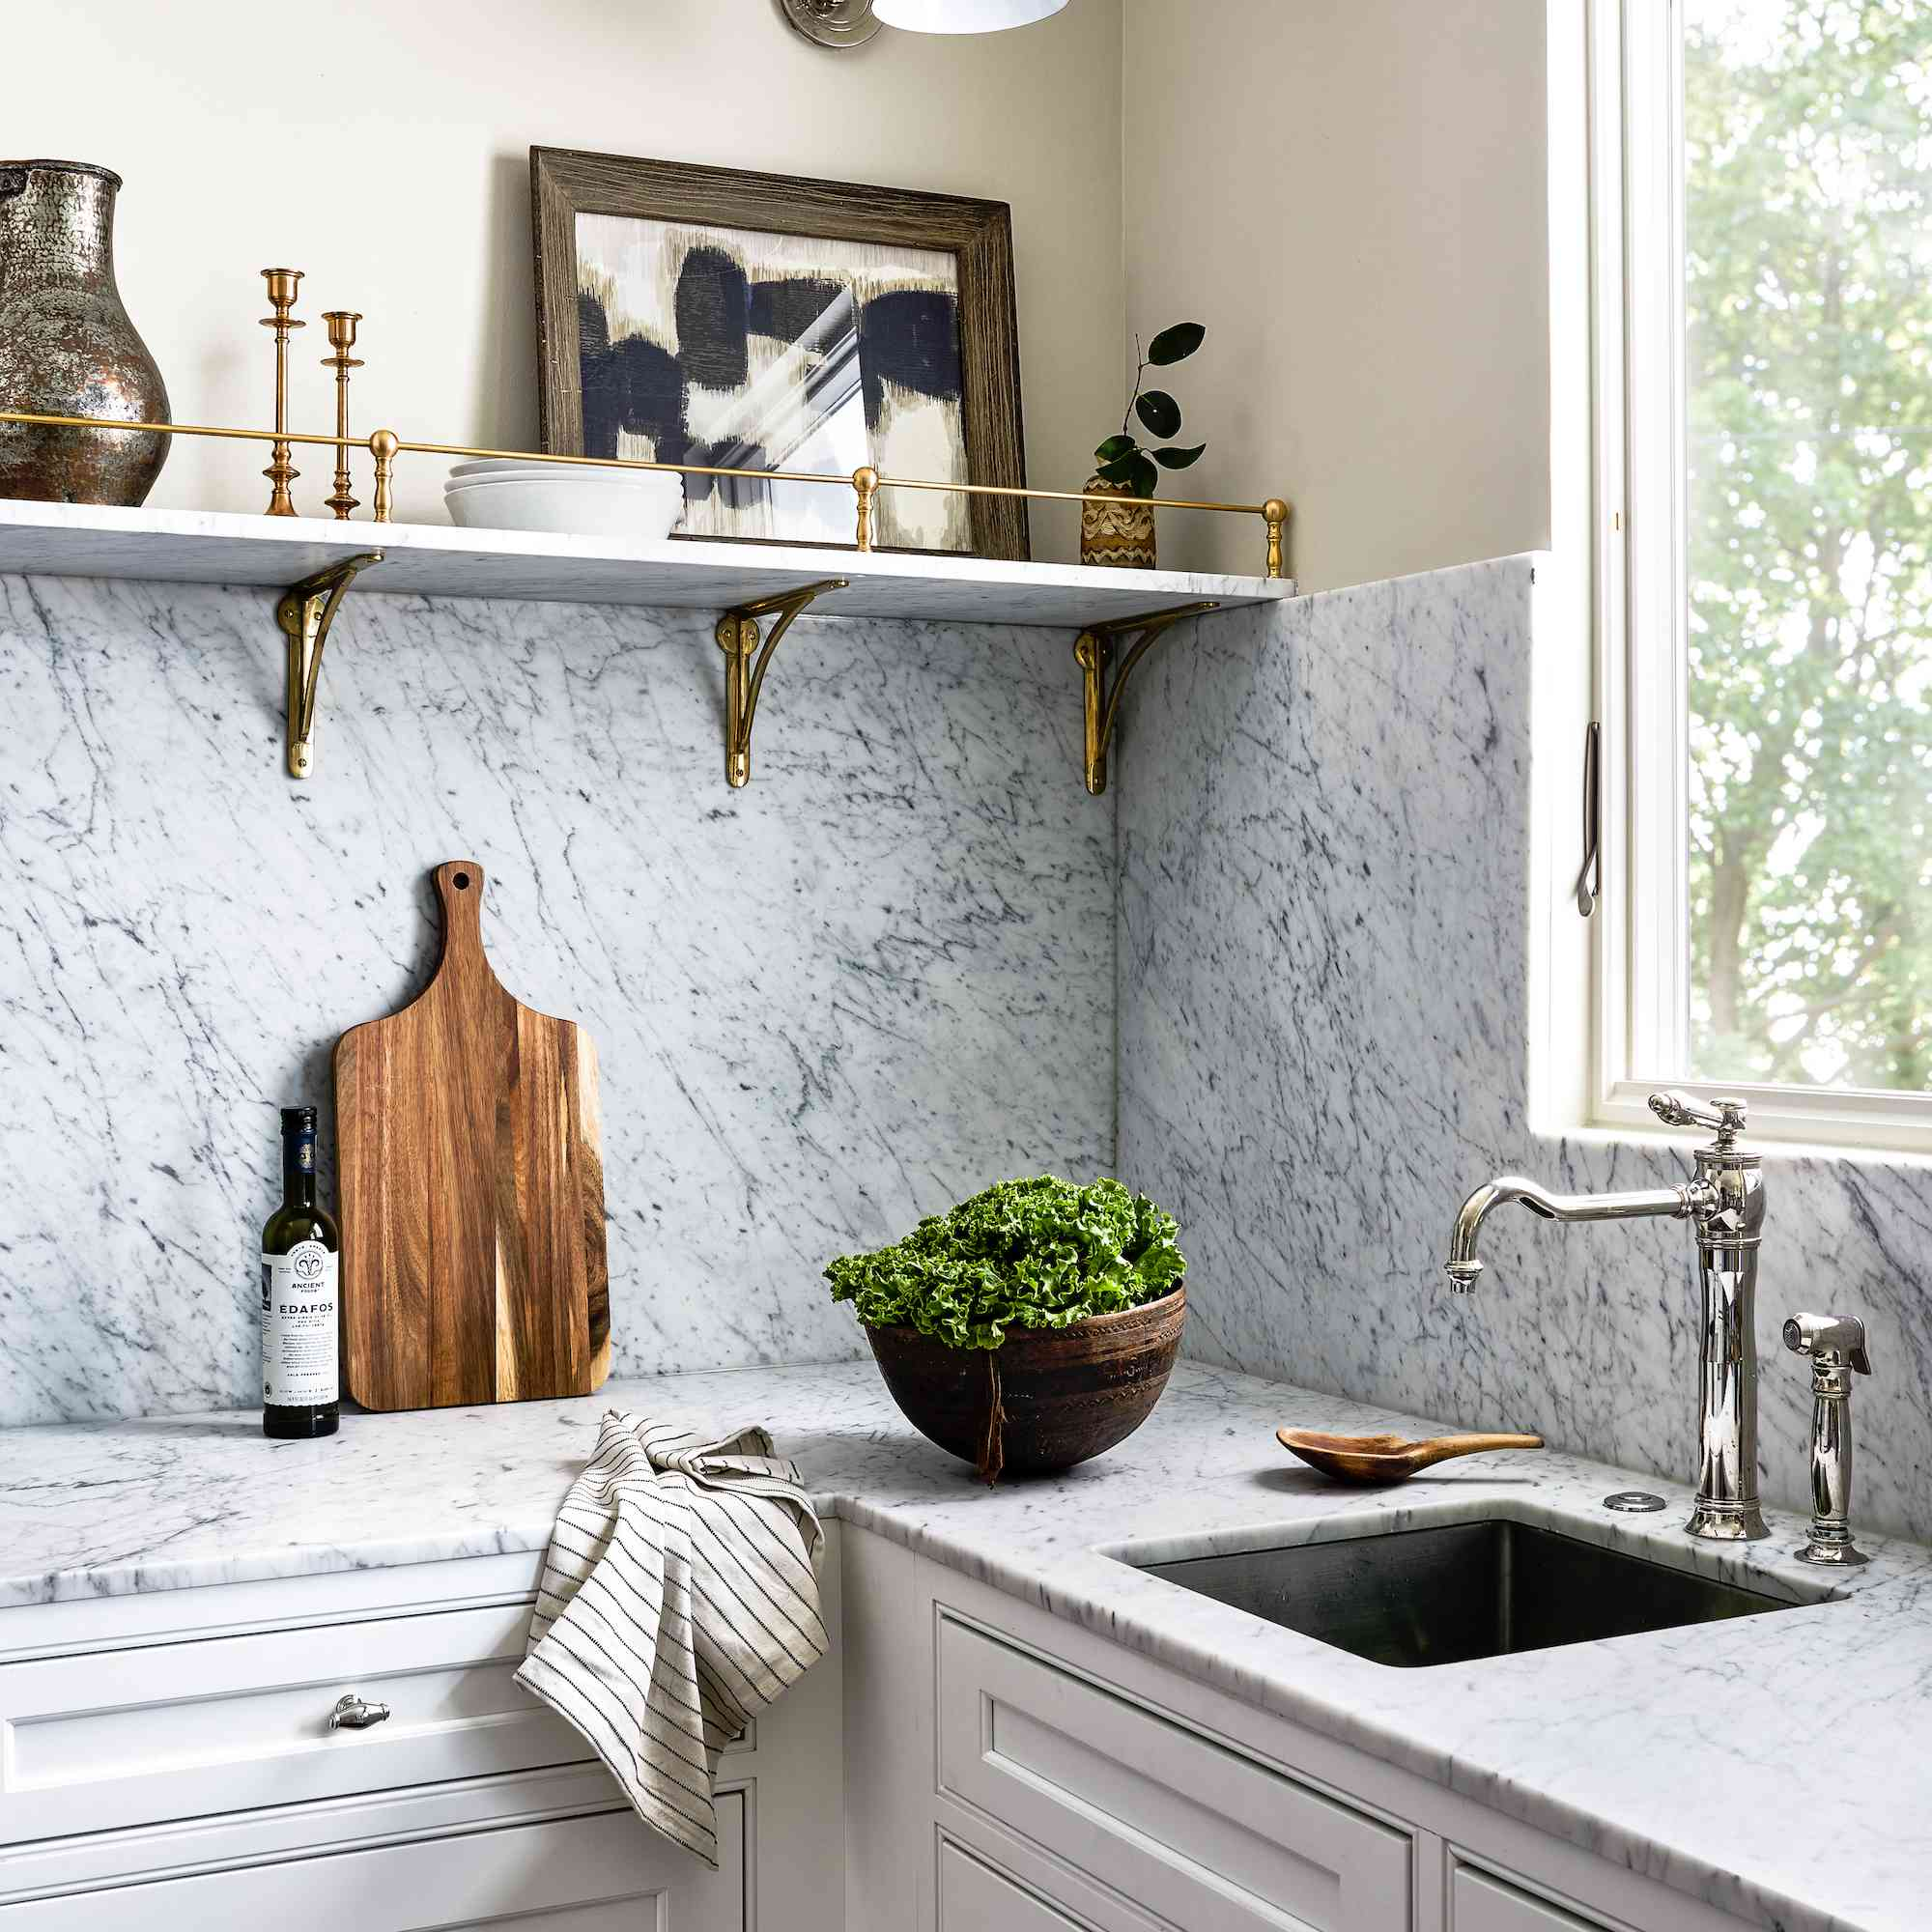 Details on the kitchen counters.